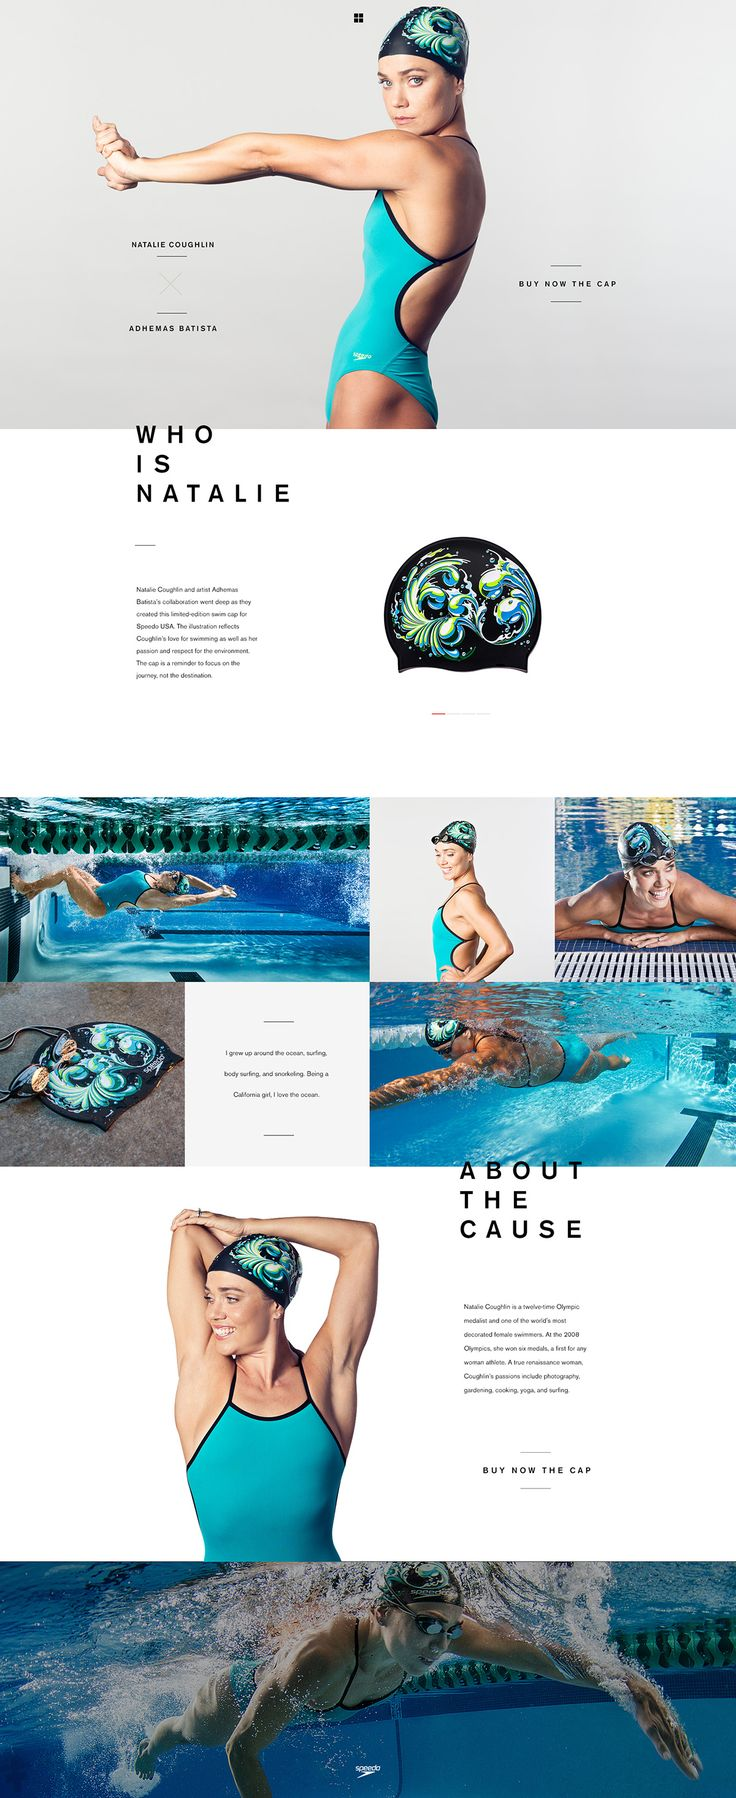 """Speedo """"the art of the cap"""" by André do Amaral"""